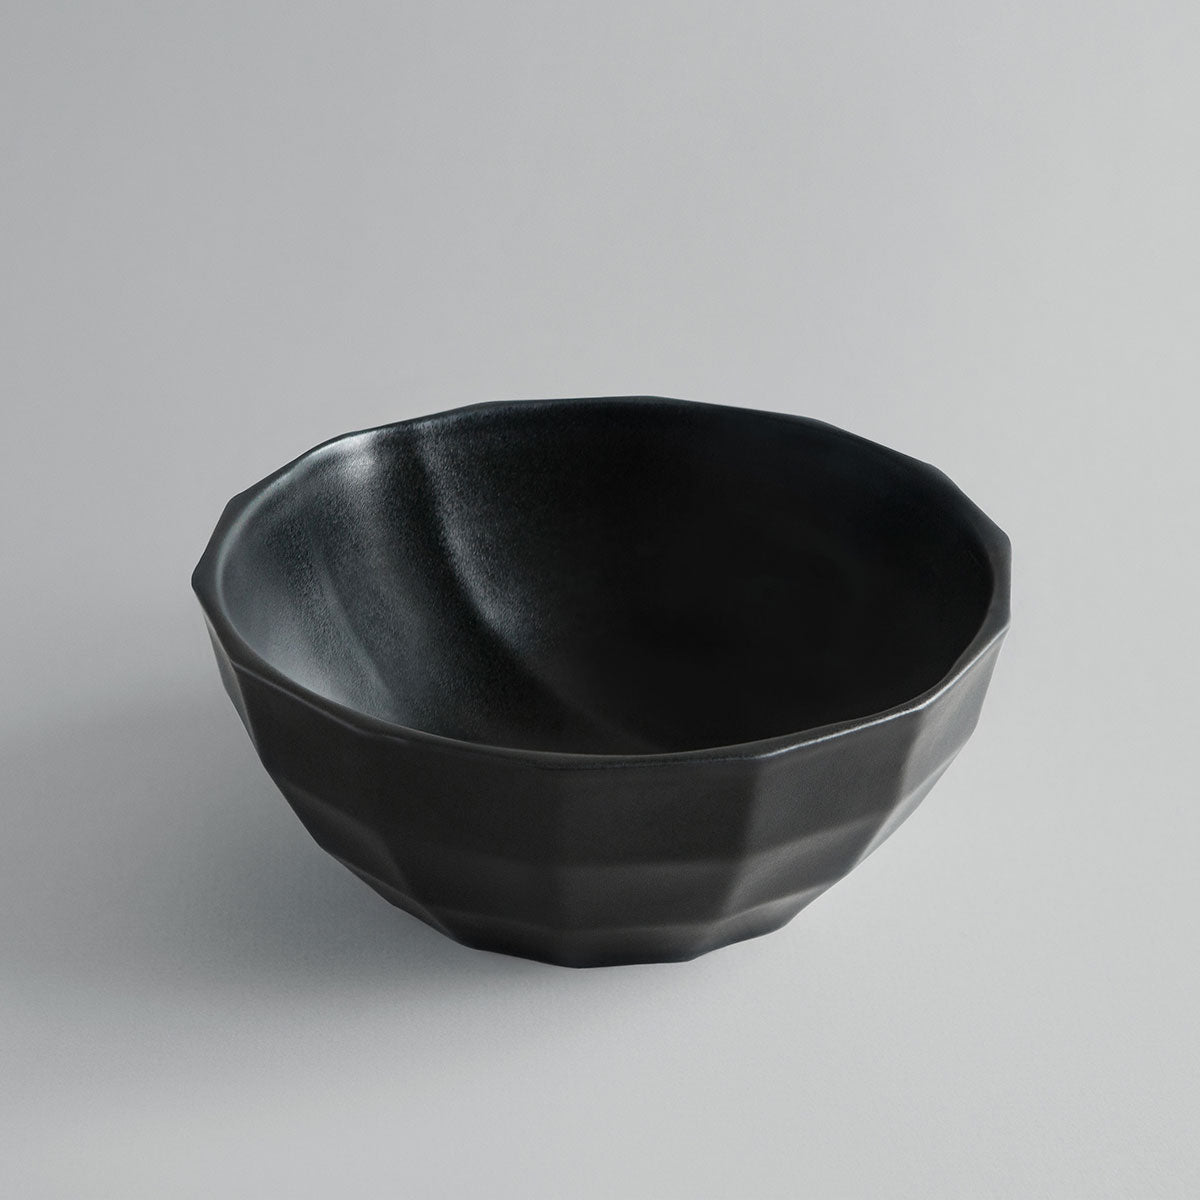 Solid Black Channel Bowl + Pairing Spoon